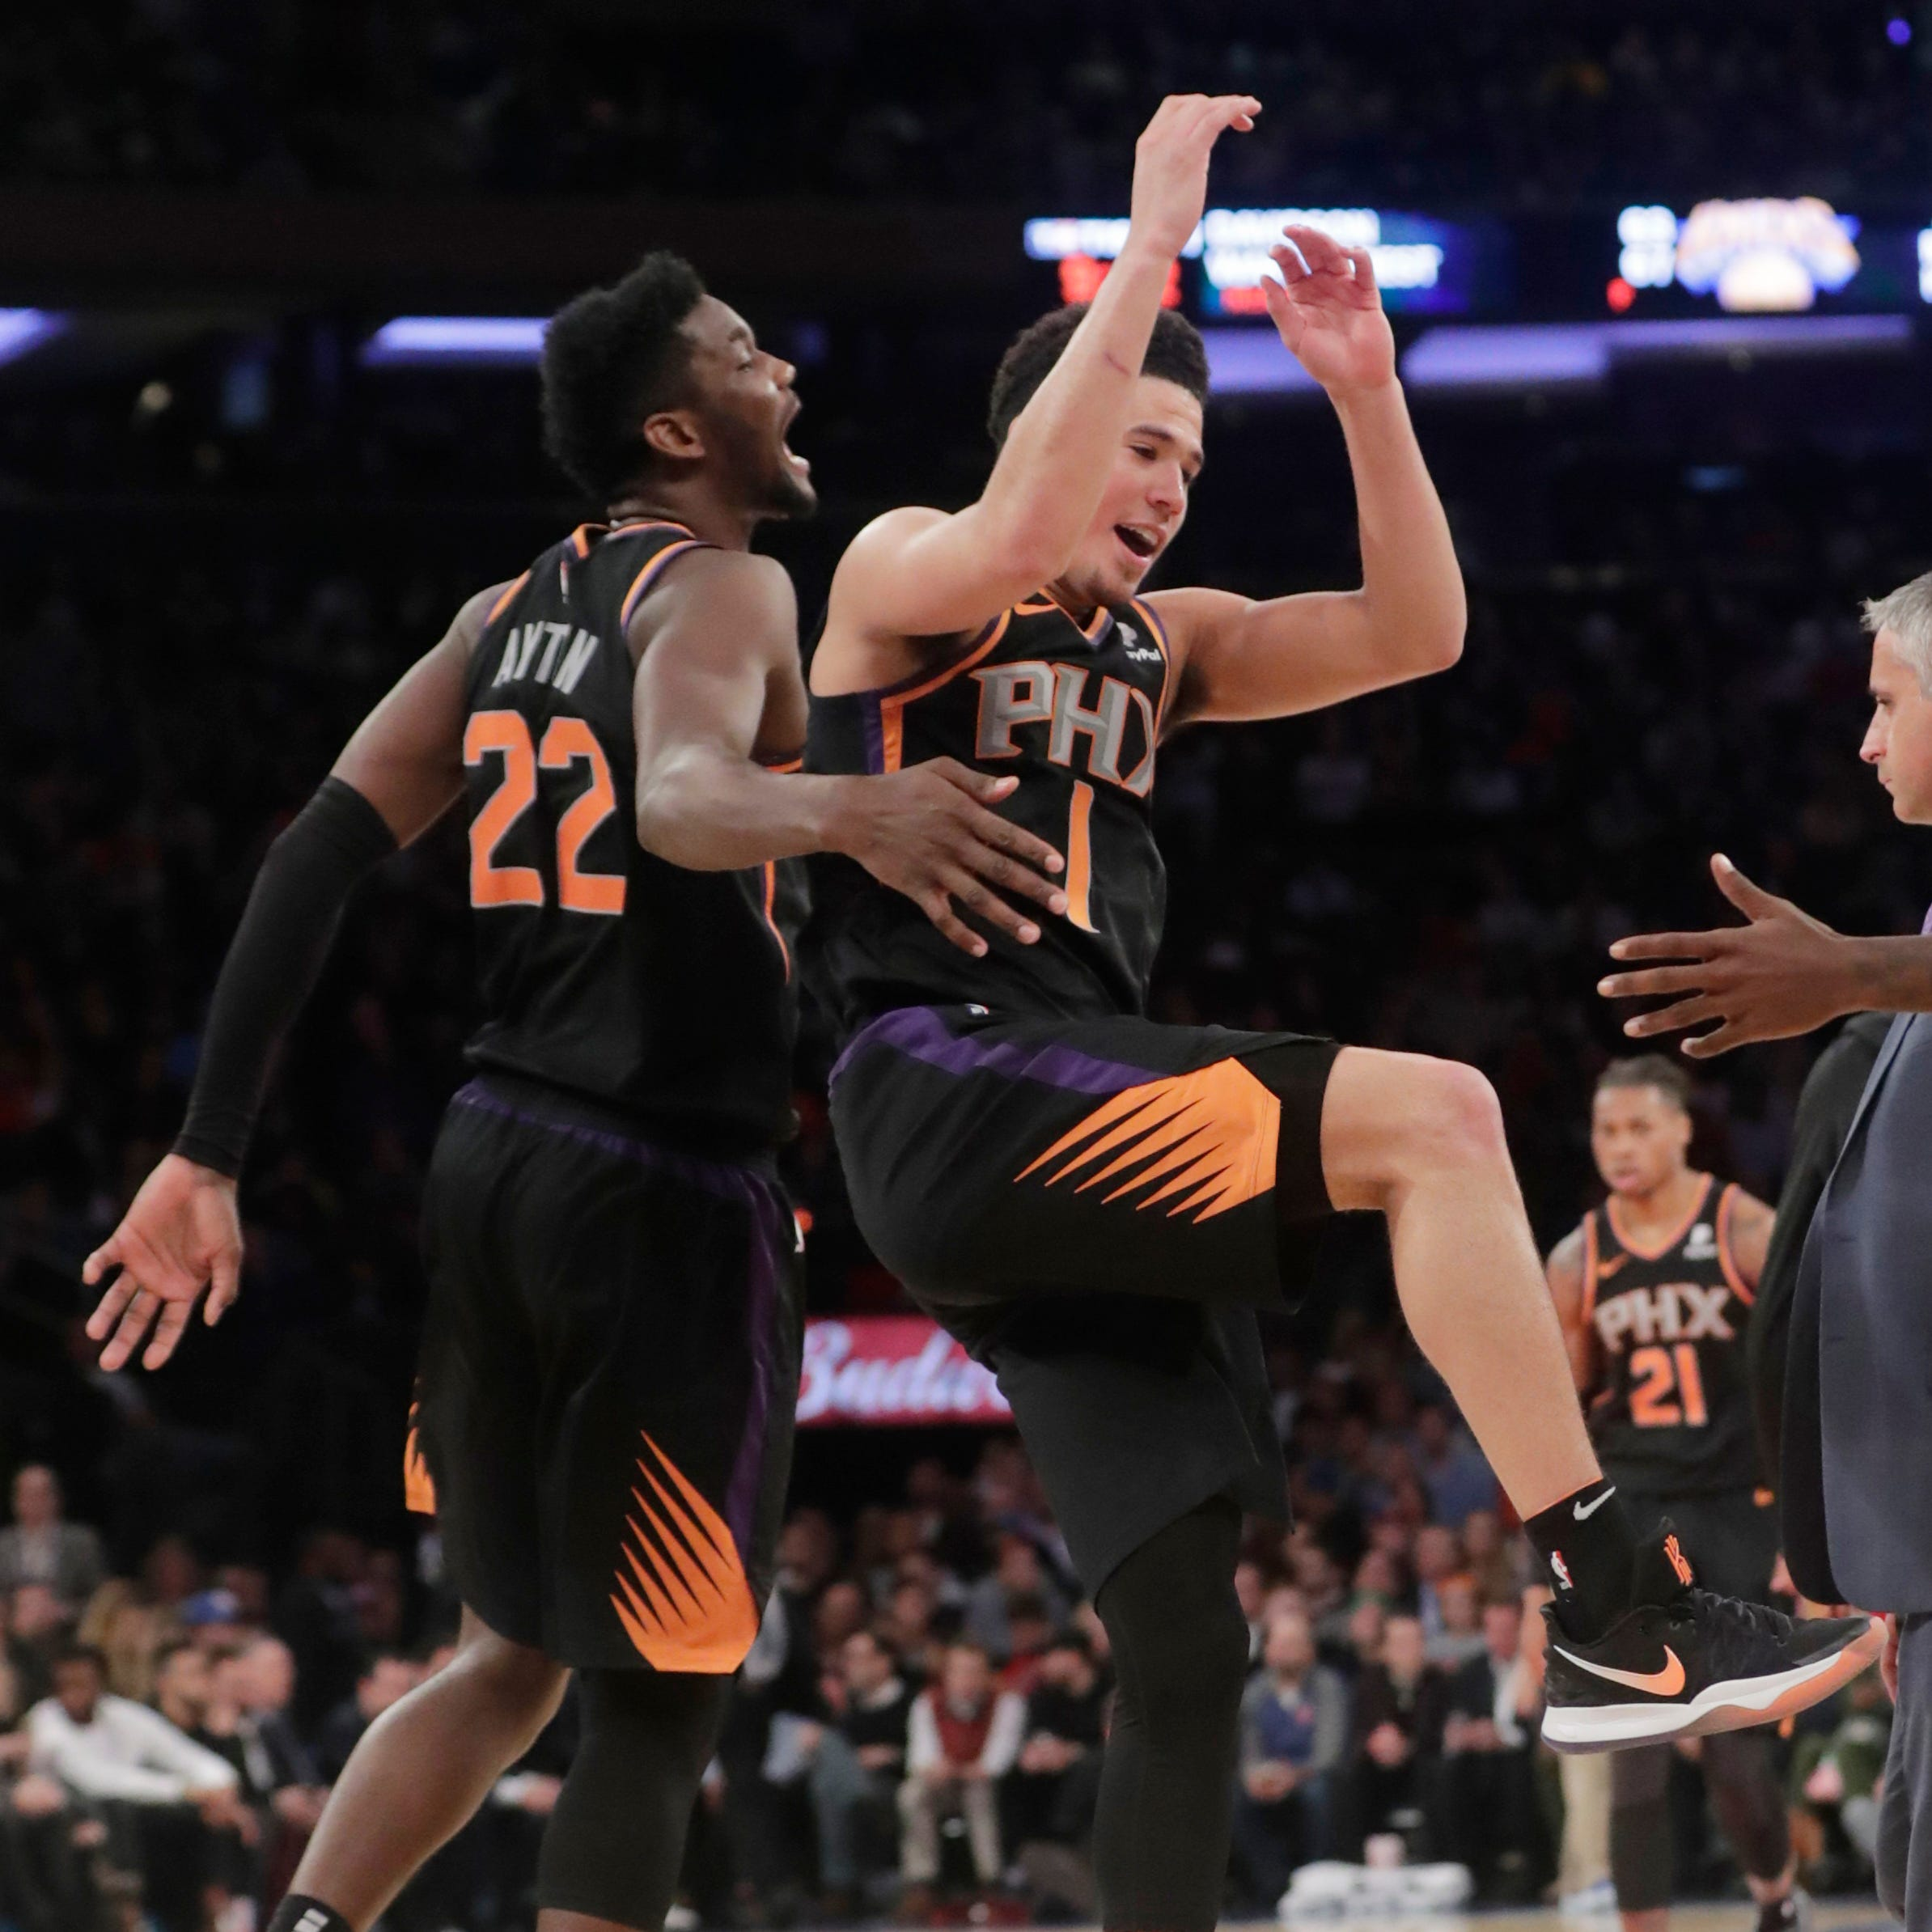 Devin Booker, Jamal Crawford lead balanced effort against Knicks for Suns' third straight win